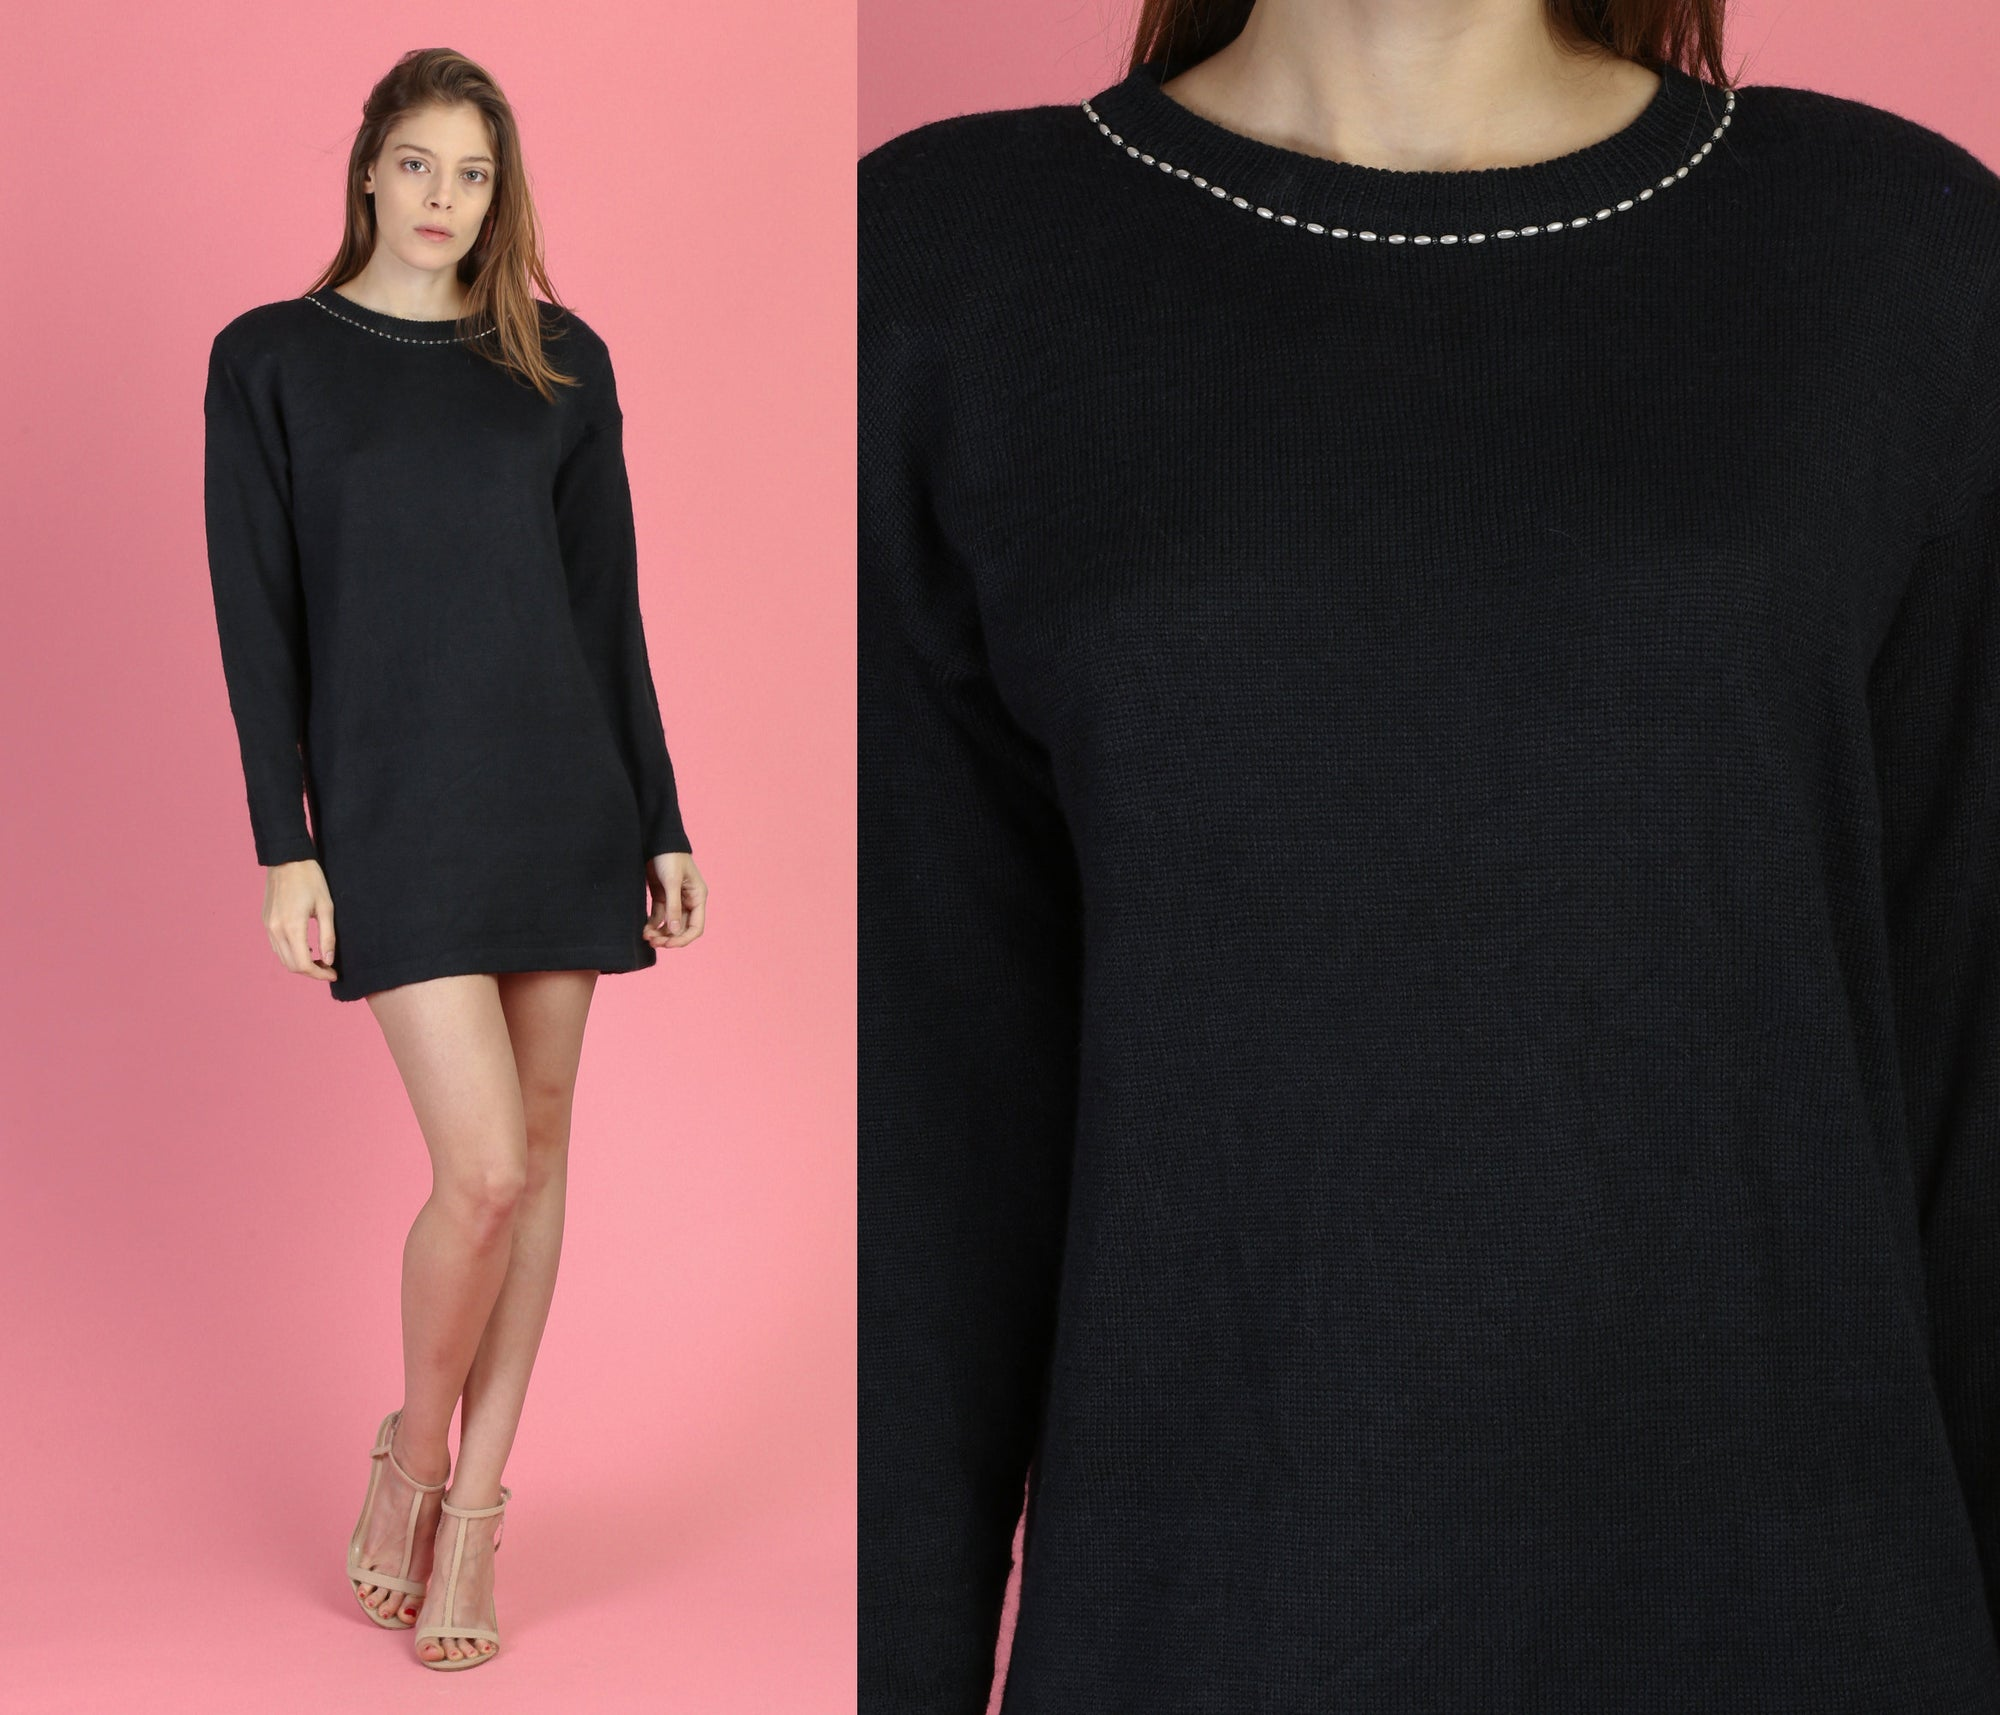 80s Black Beaded Mini Sweater Dress - Small